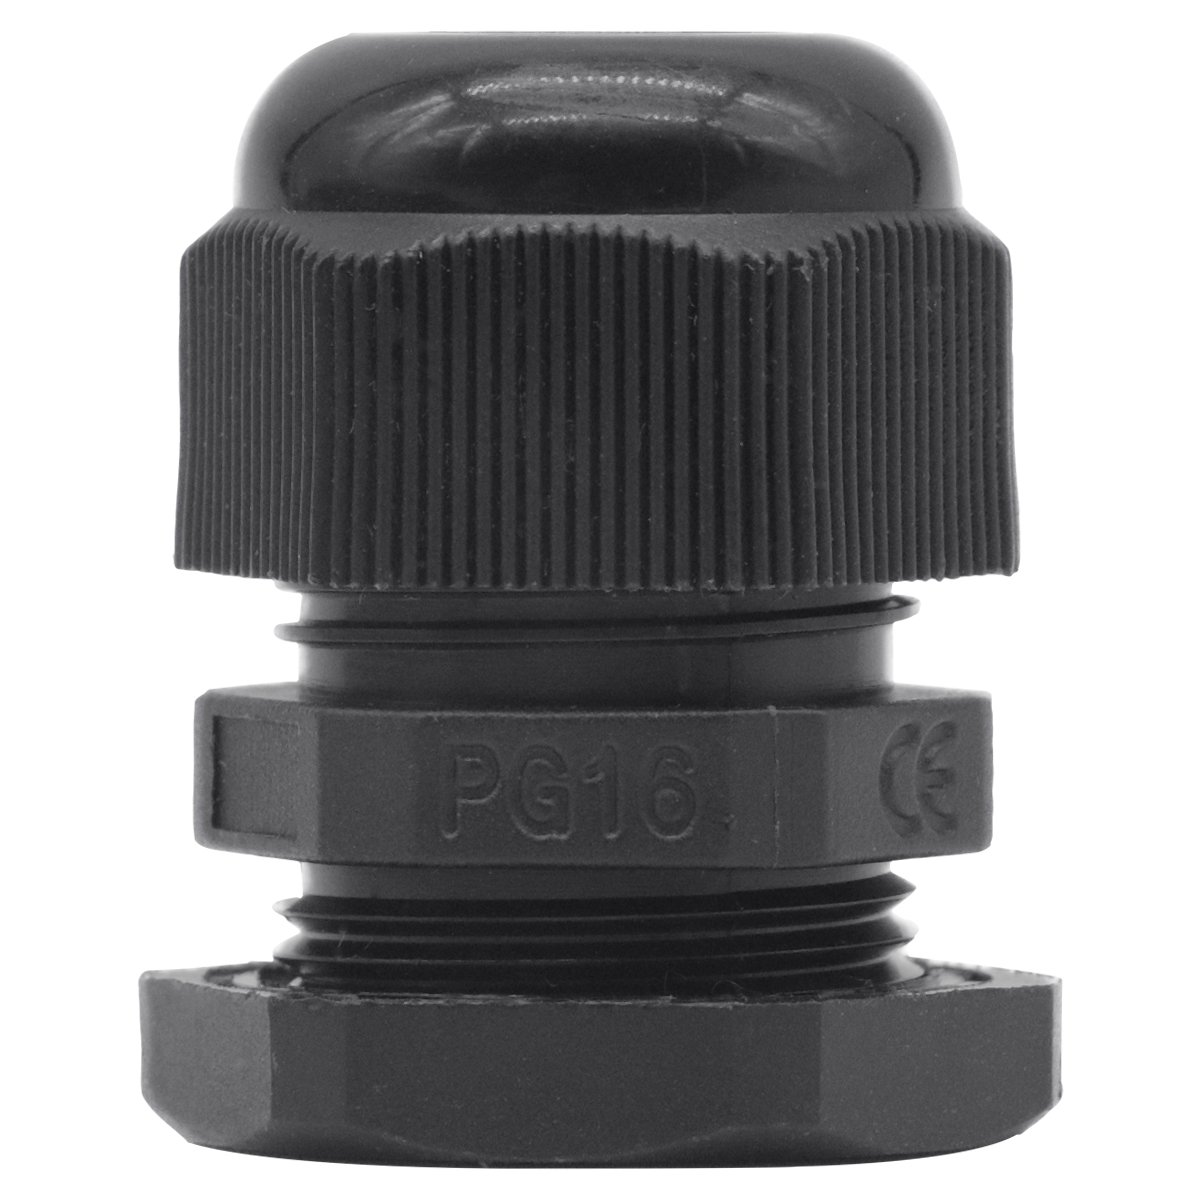 Lantee PG 16 Cable Gland - 20 Pieces Black Plastic Nylon Waterproof Wire Glands Connector Fitting by Lantee (Image #8)